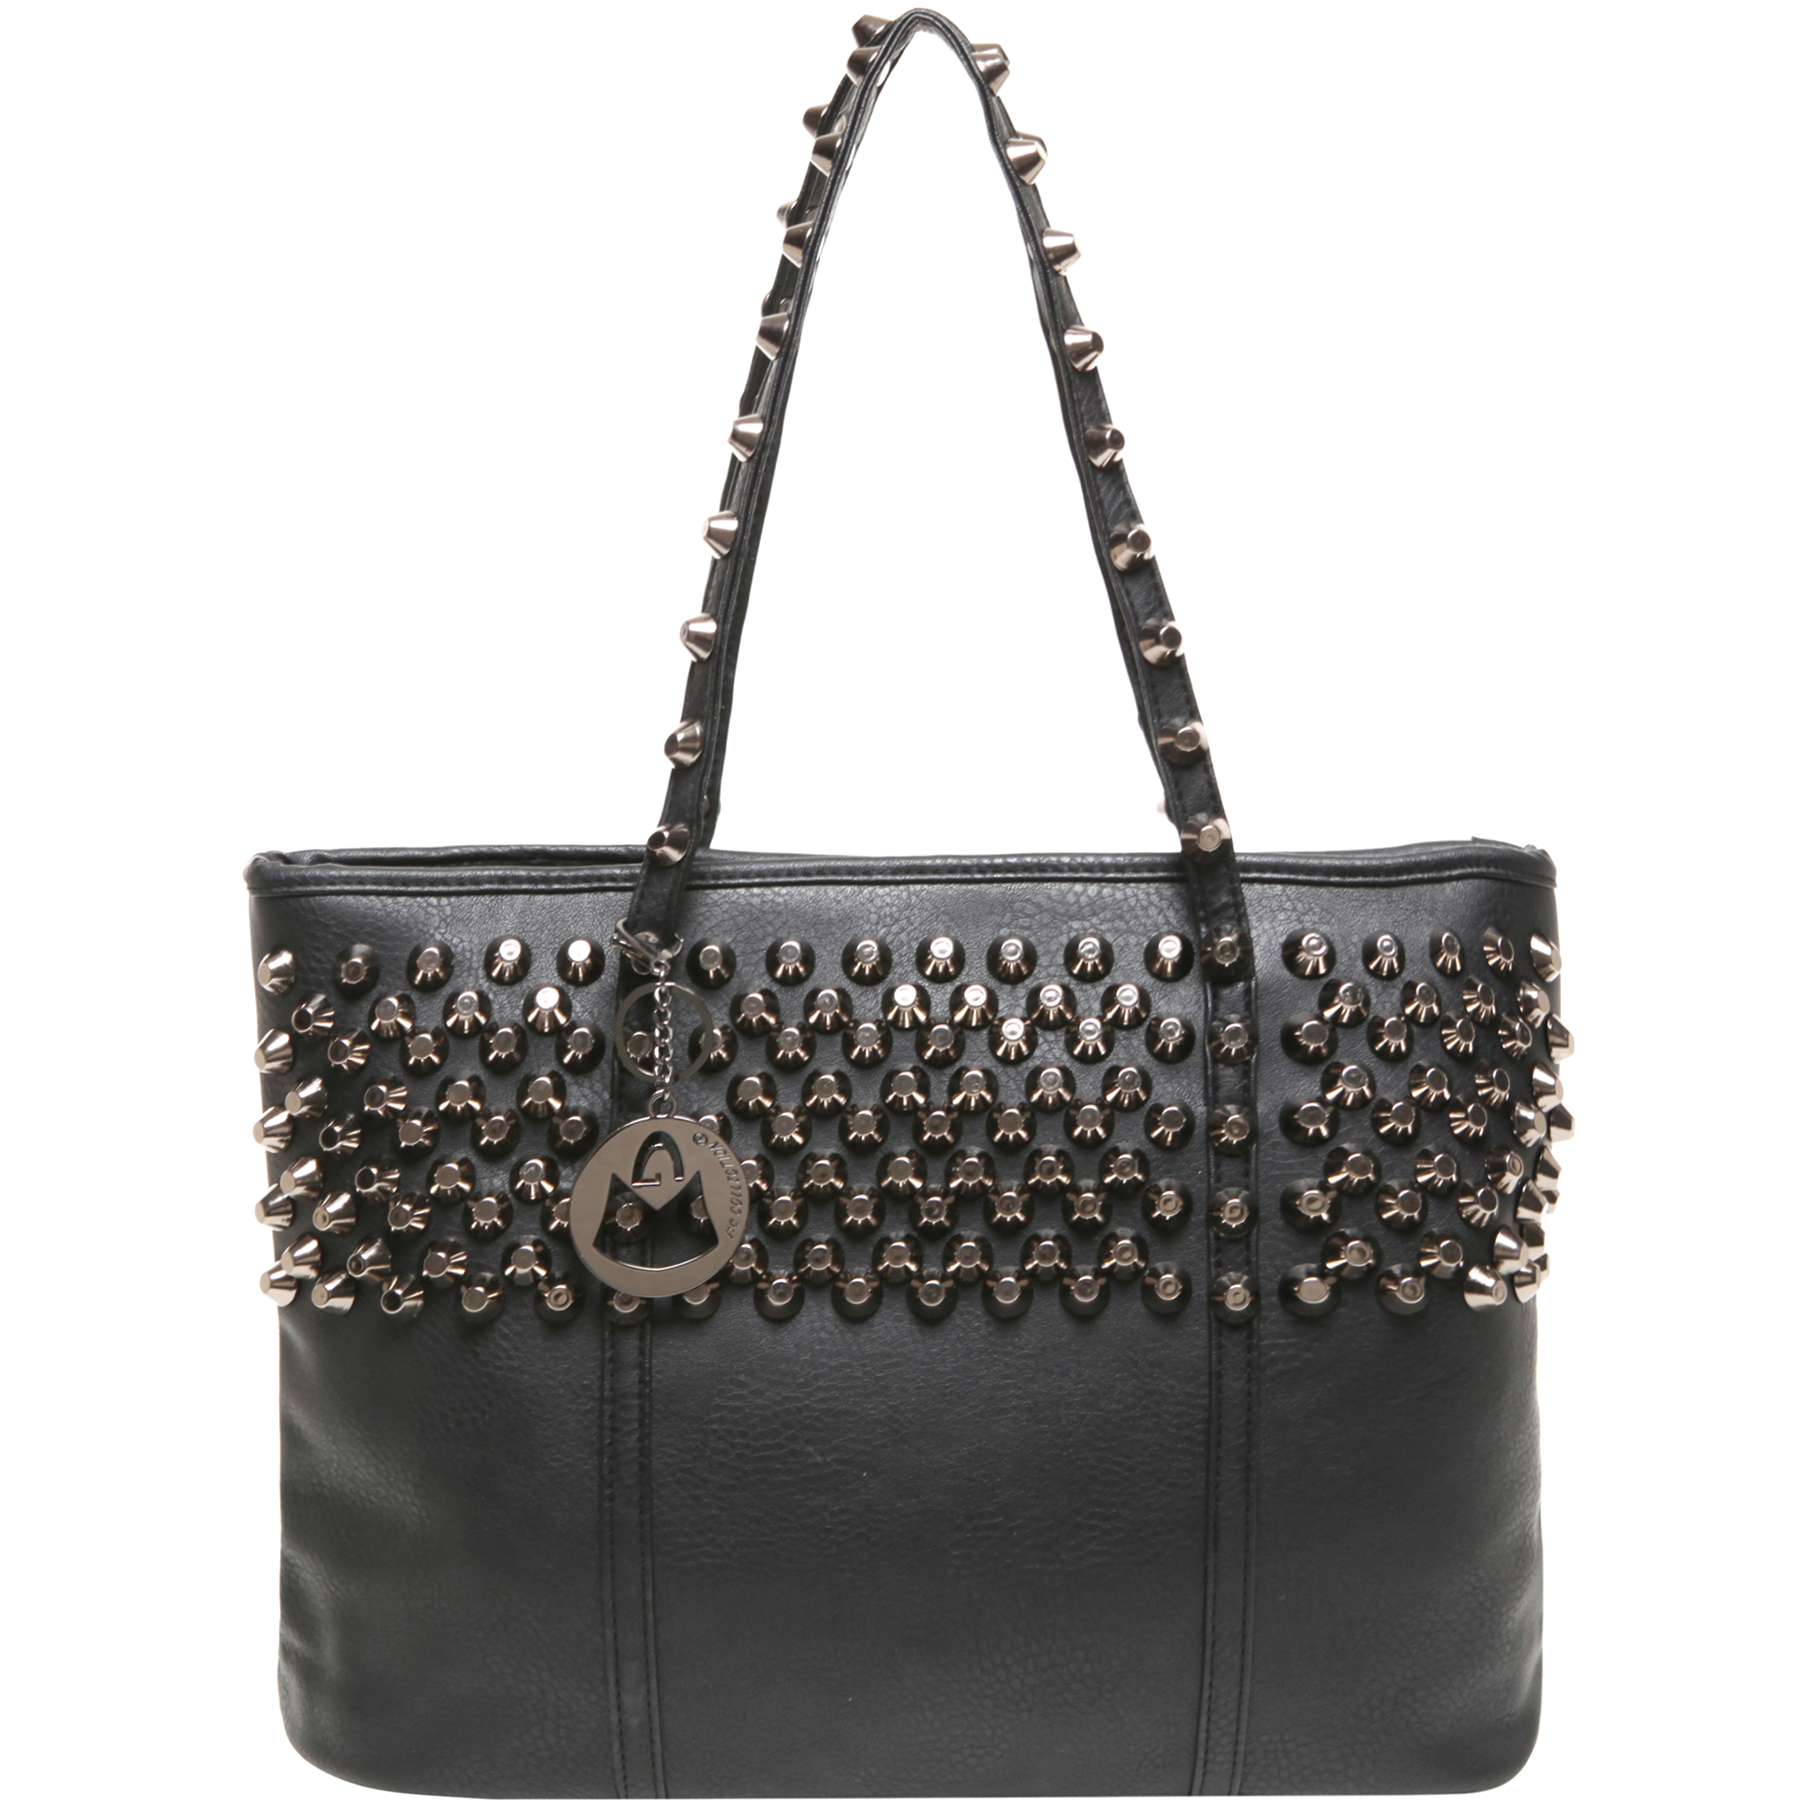 ALDA Black Studded Shopper Tote Purse Front